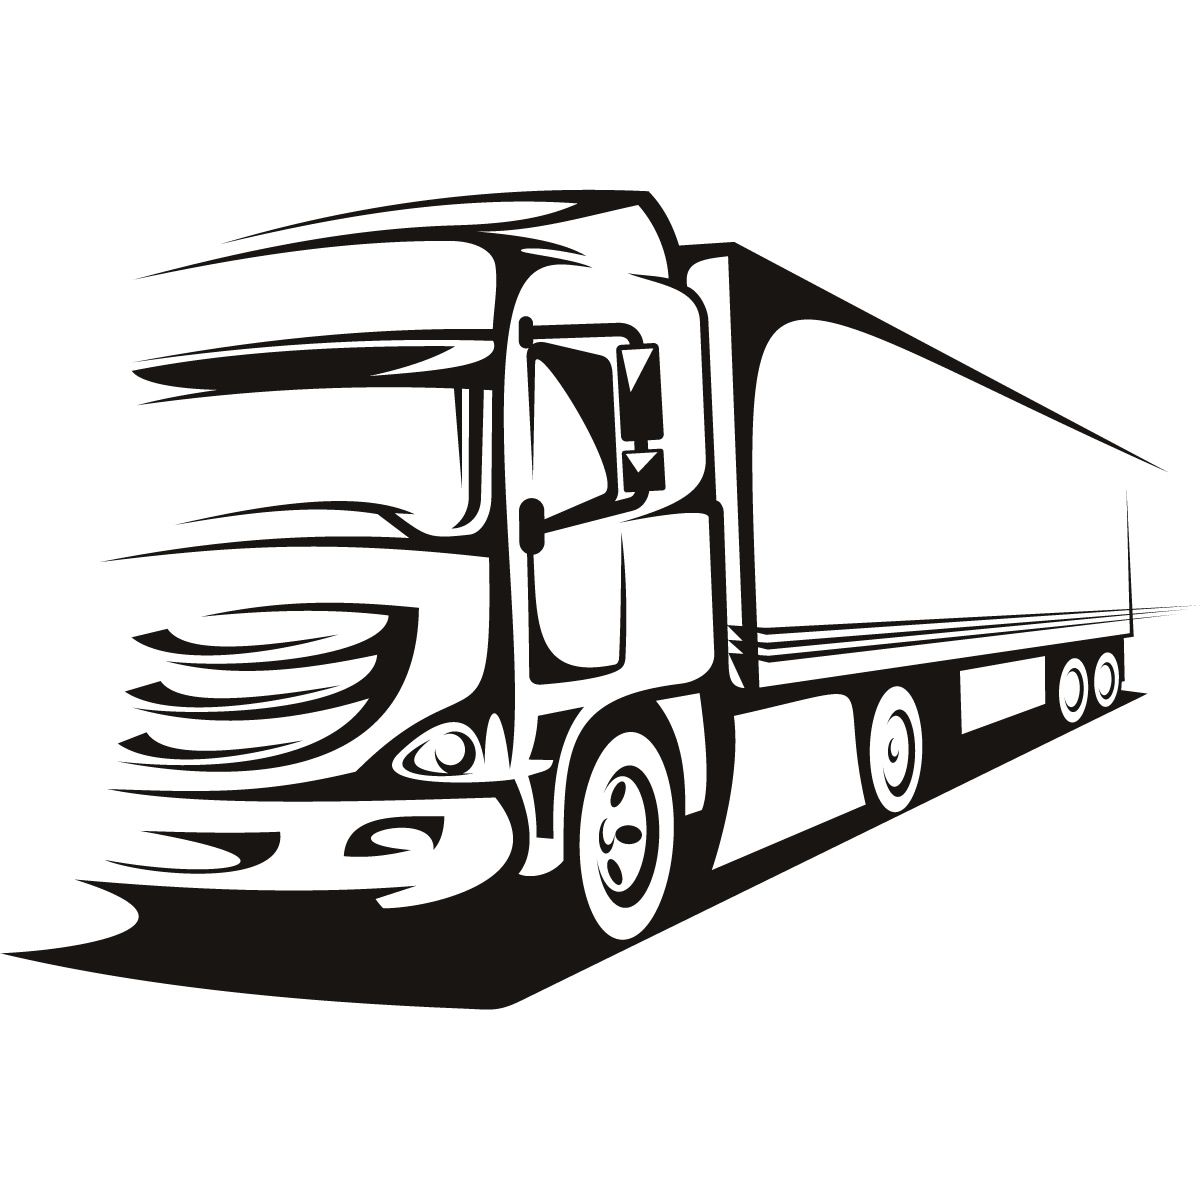 Free Lorry, Download Free Clip Art, Free Clip Art on